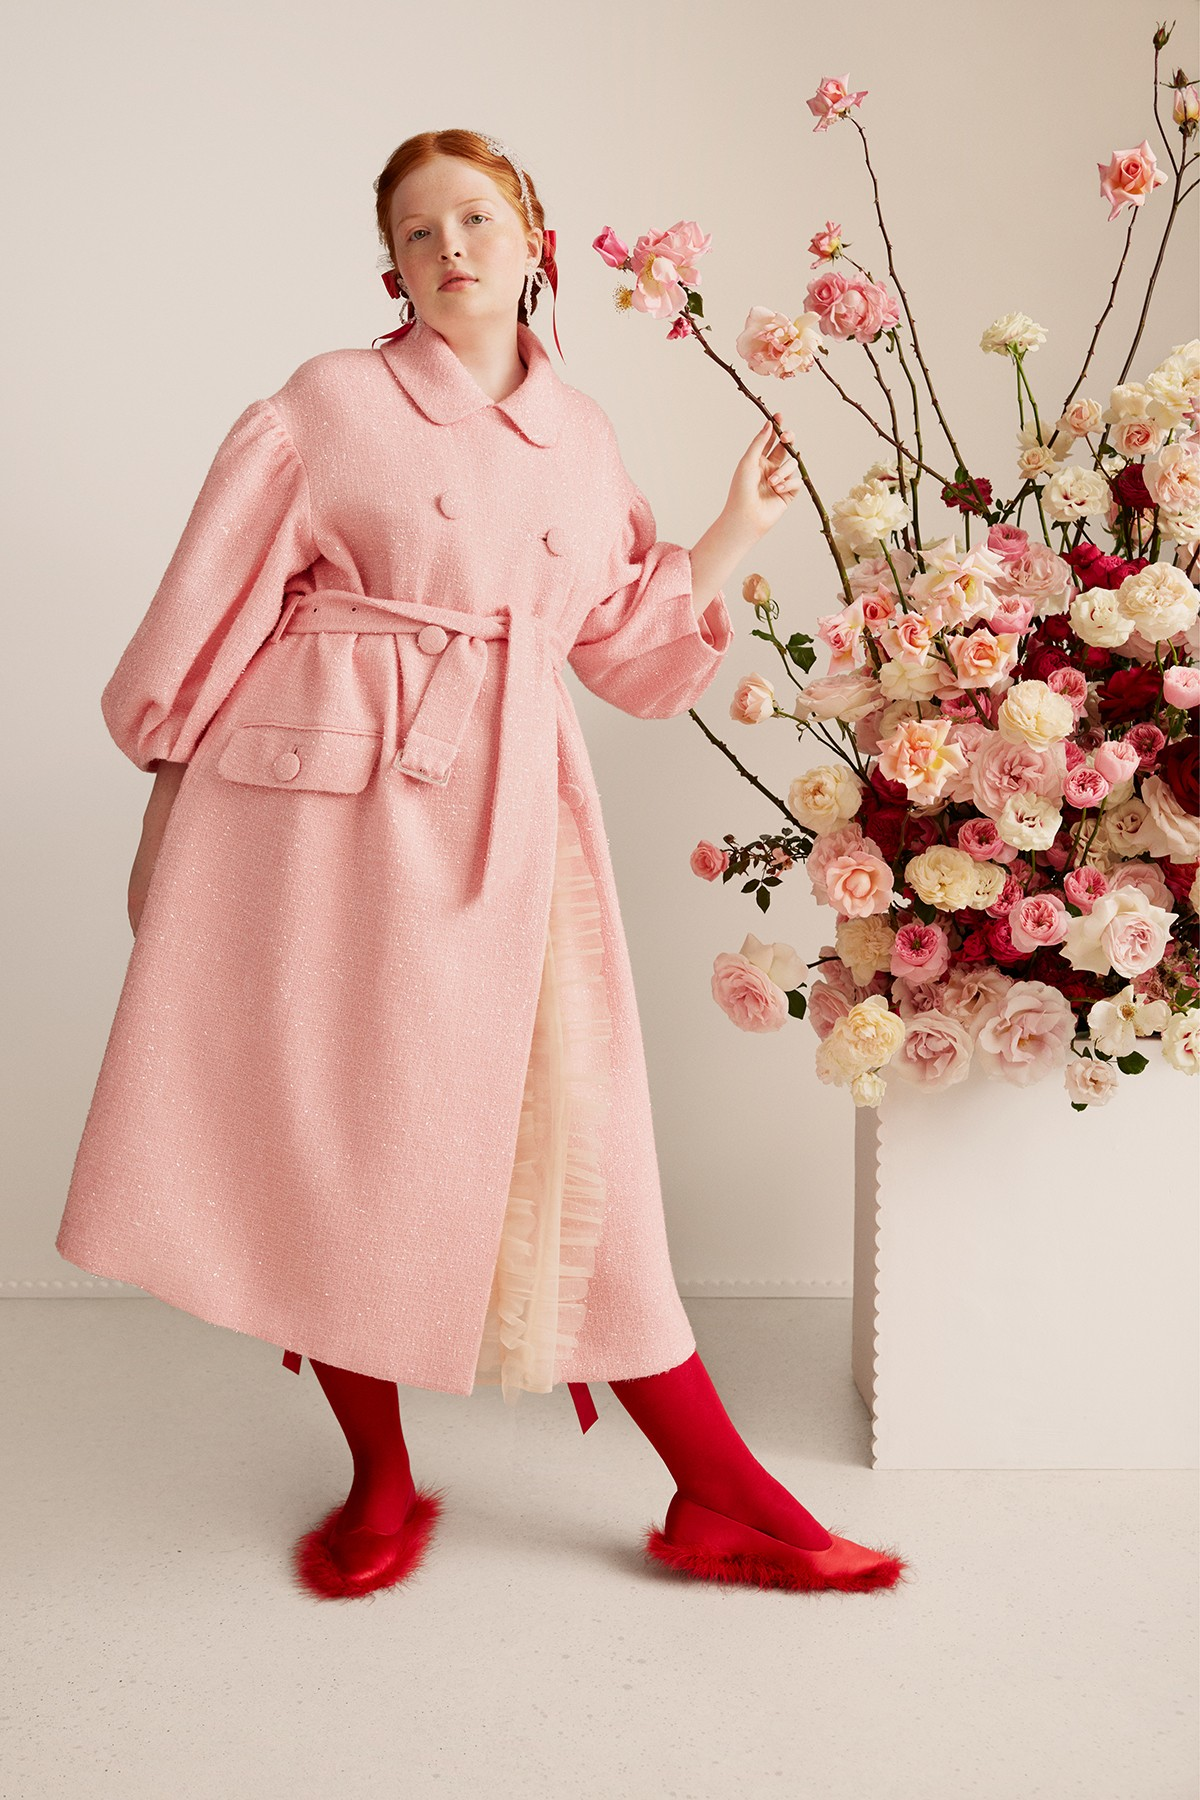 Simone Rocha x H&M Collaboration Campaign Daisy Edgar-Jones